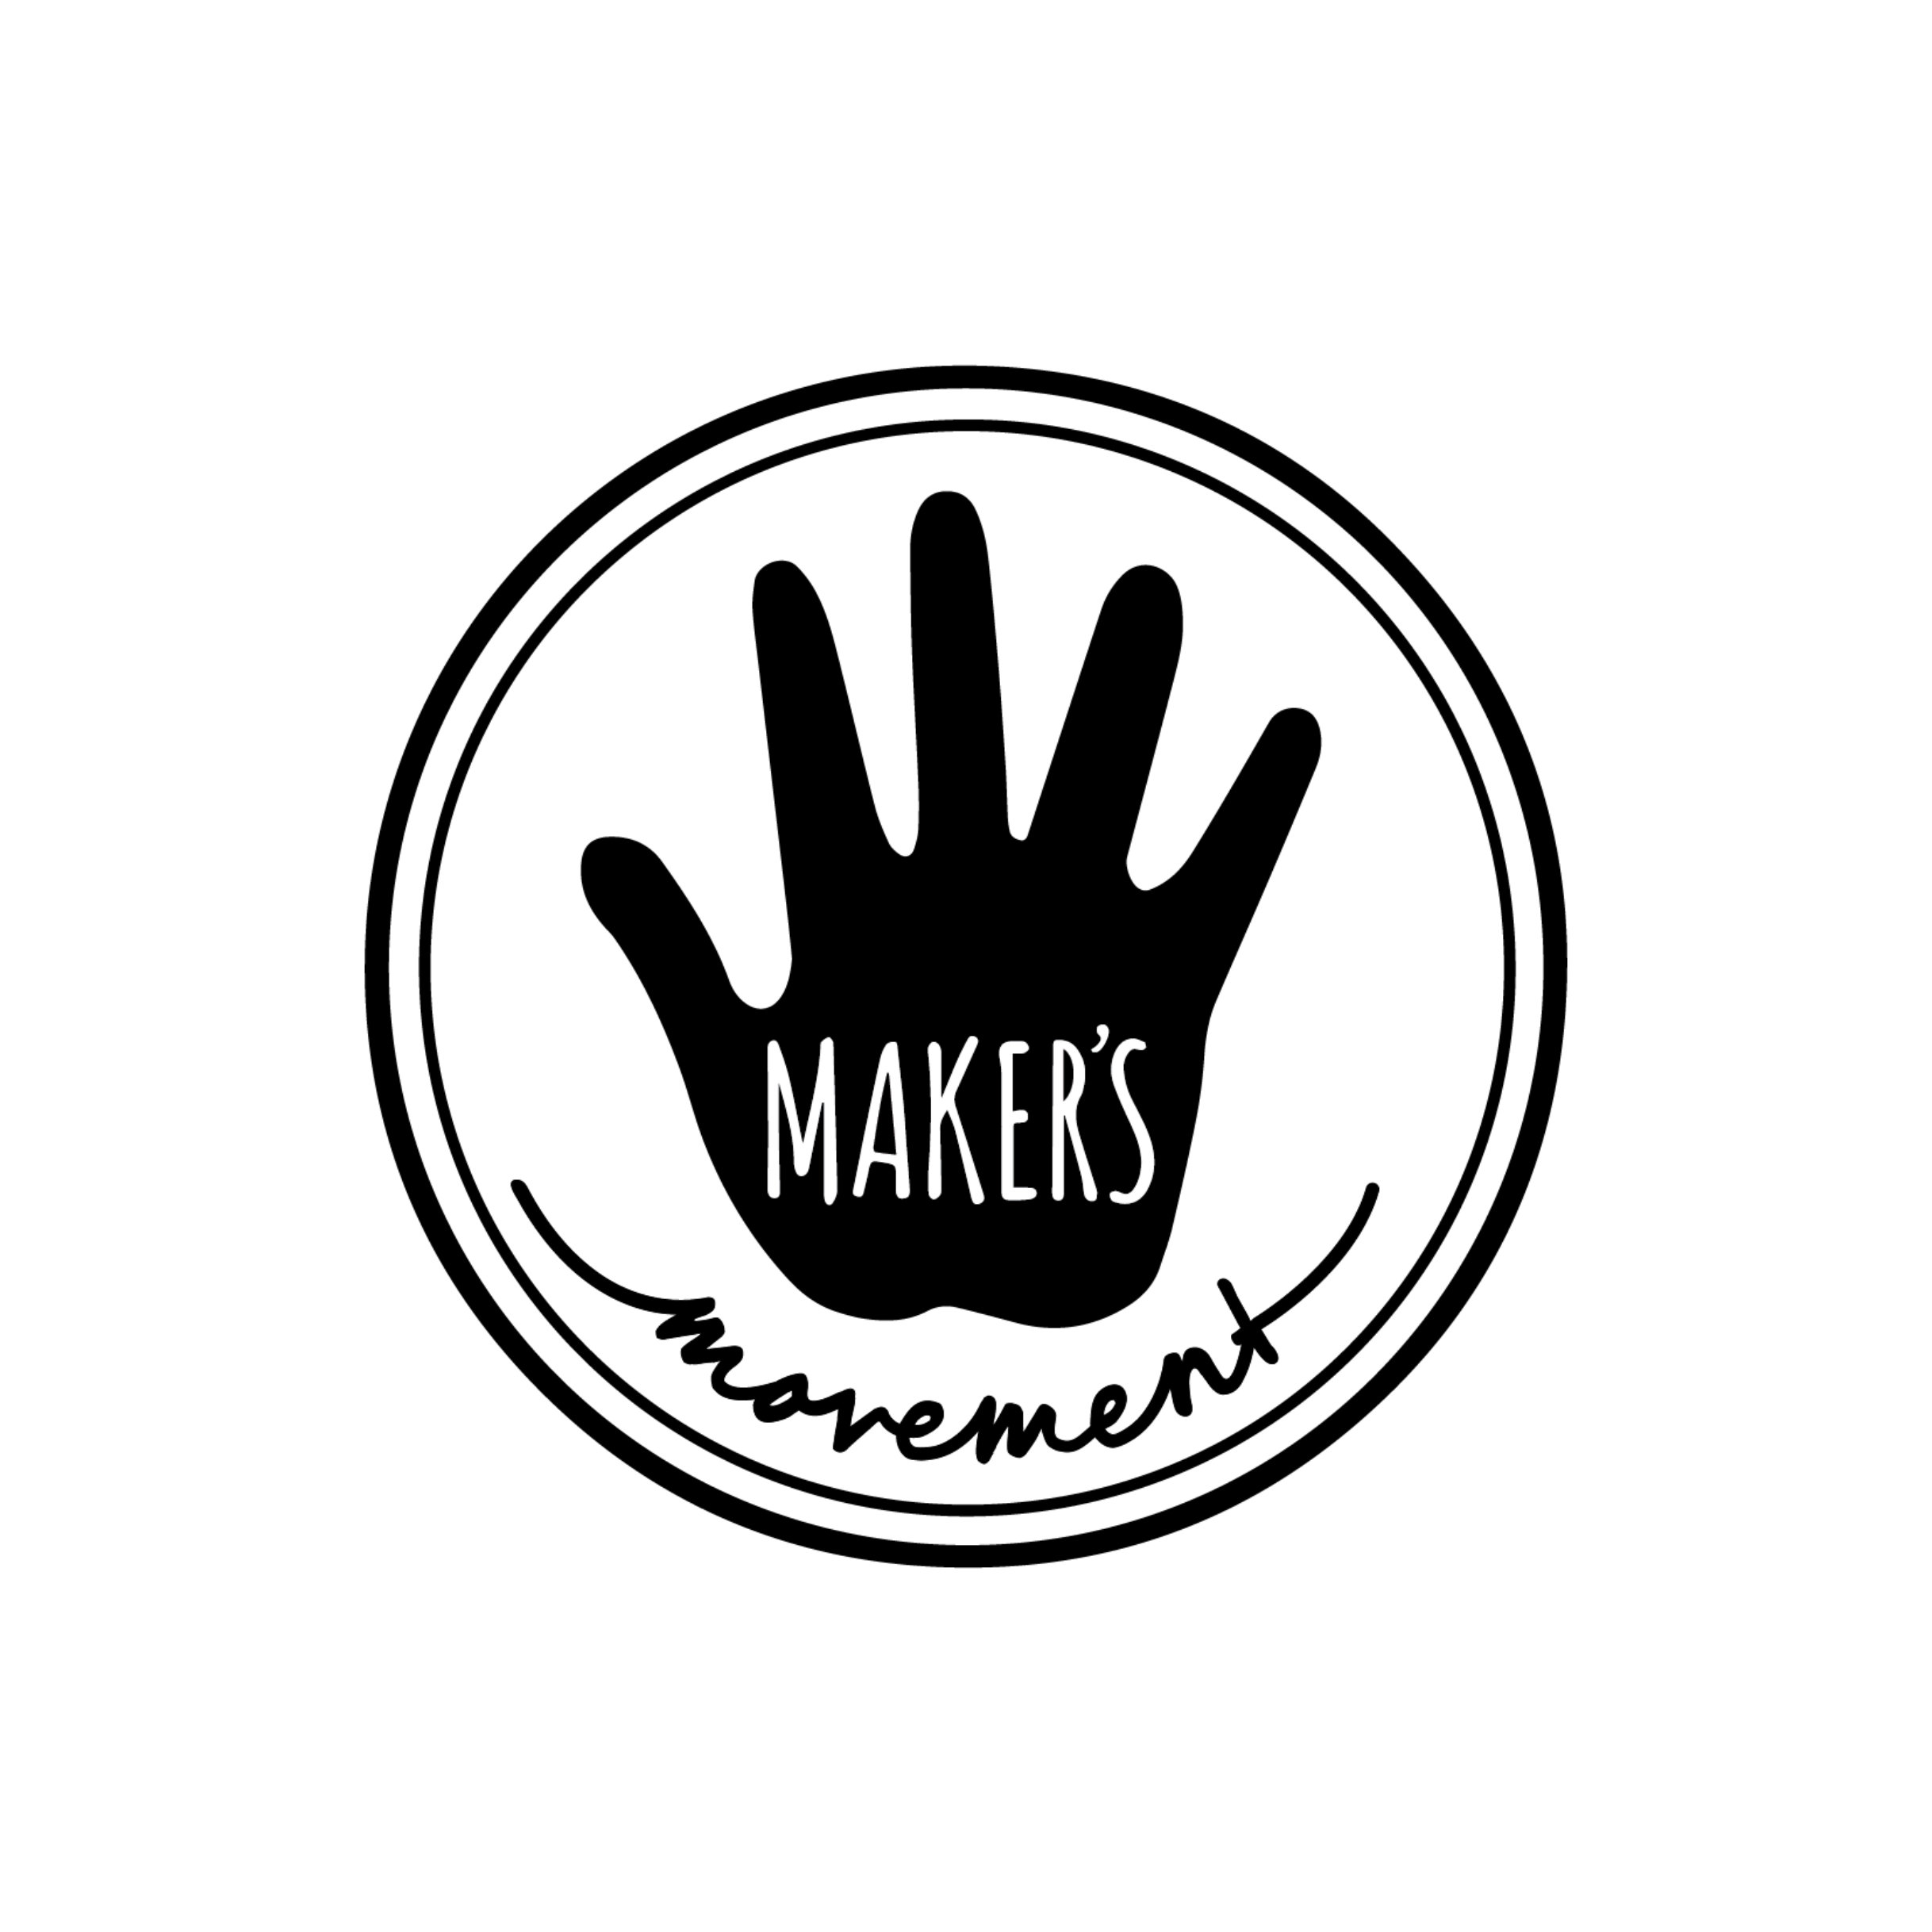 MAKERS MOVEMENT - Article written by Bramble Lee Pryde: What it Means to be a Woman Artist.